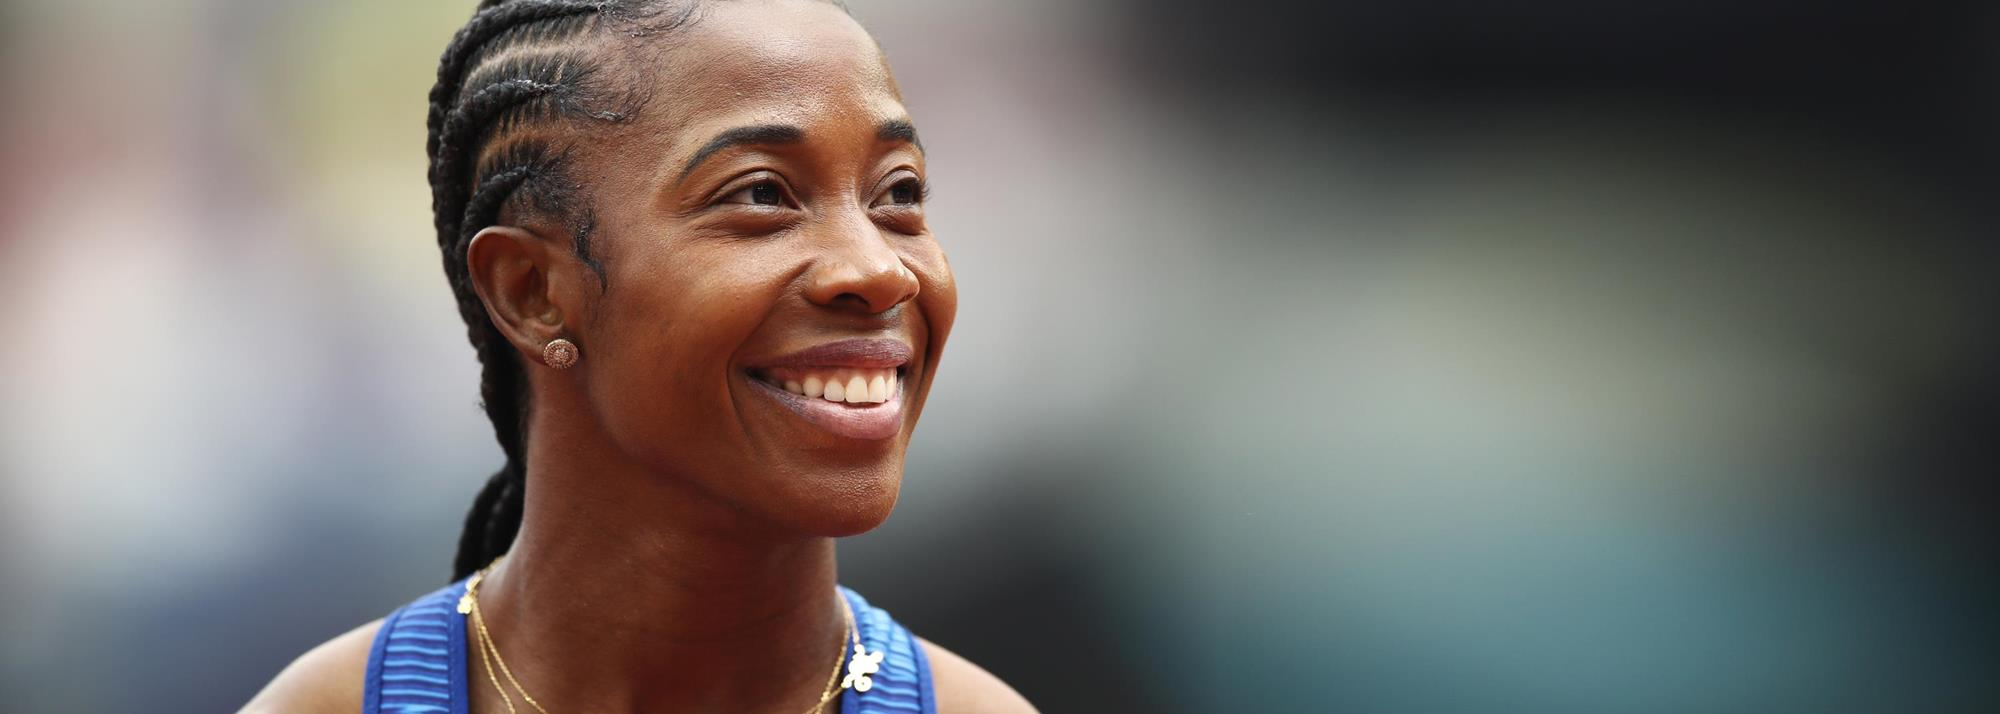 Speedy times from Fraser-Pryce and Thompson-Herah| News